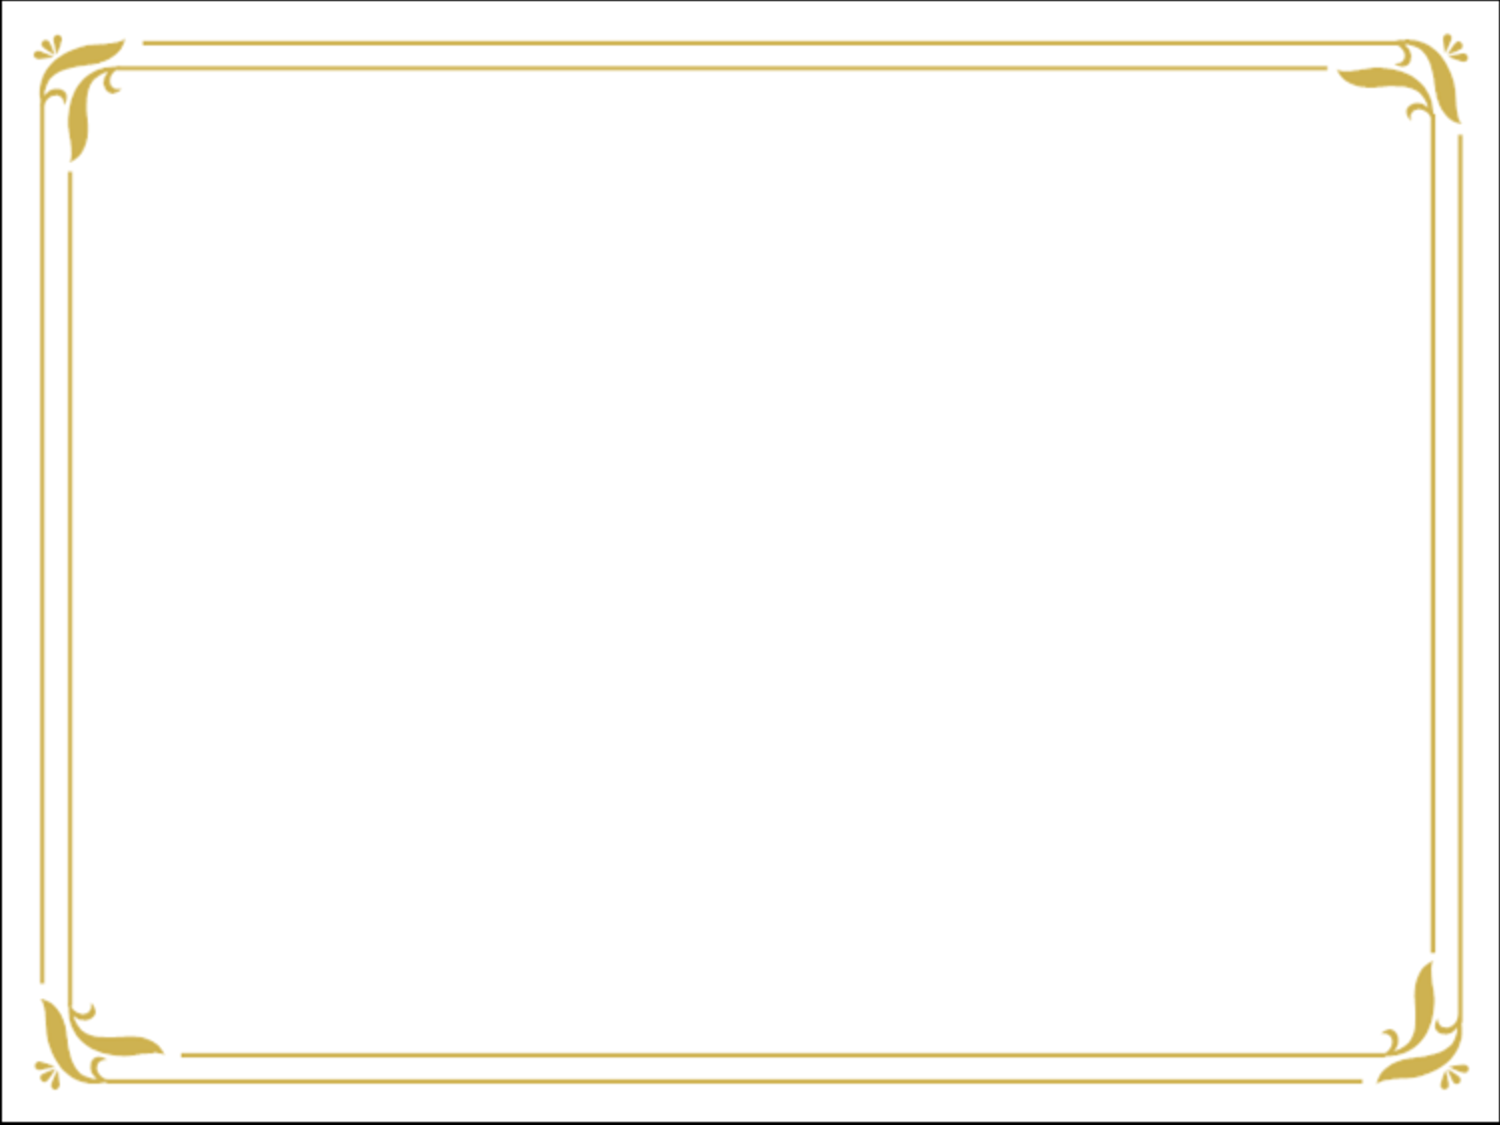 Free Powerpoint Template Simple Gold Certificate Border